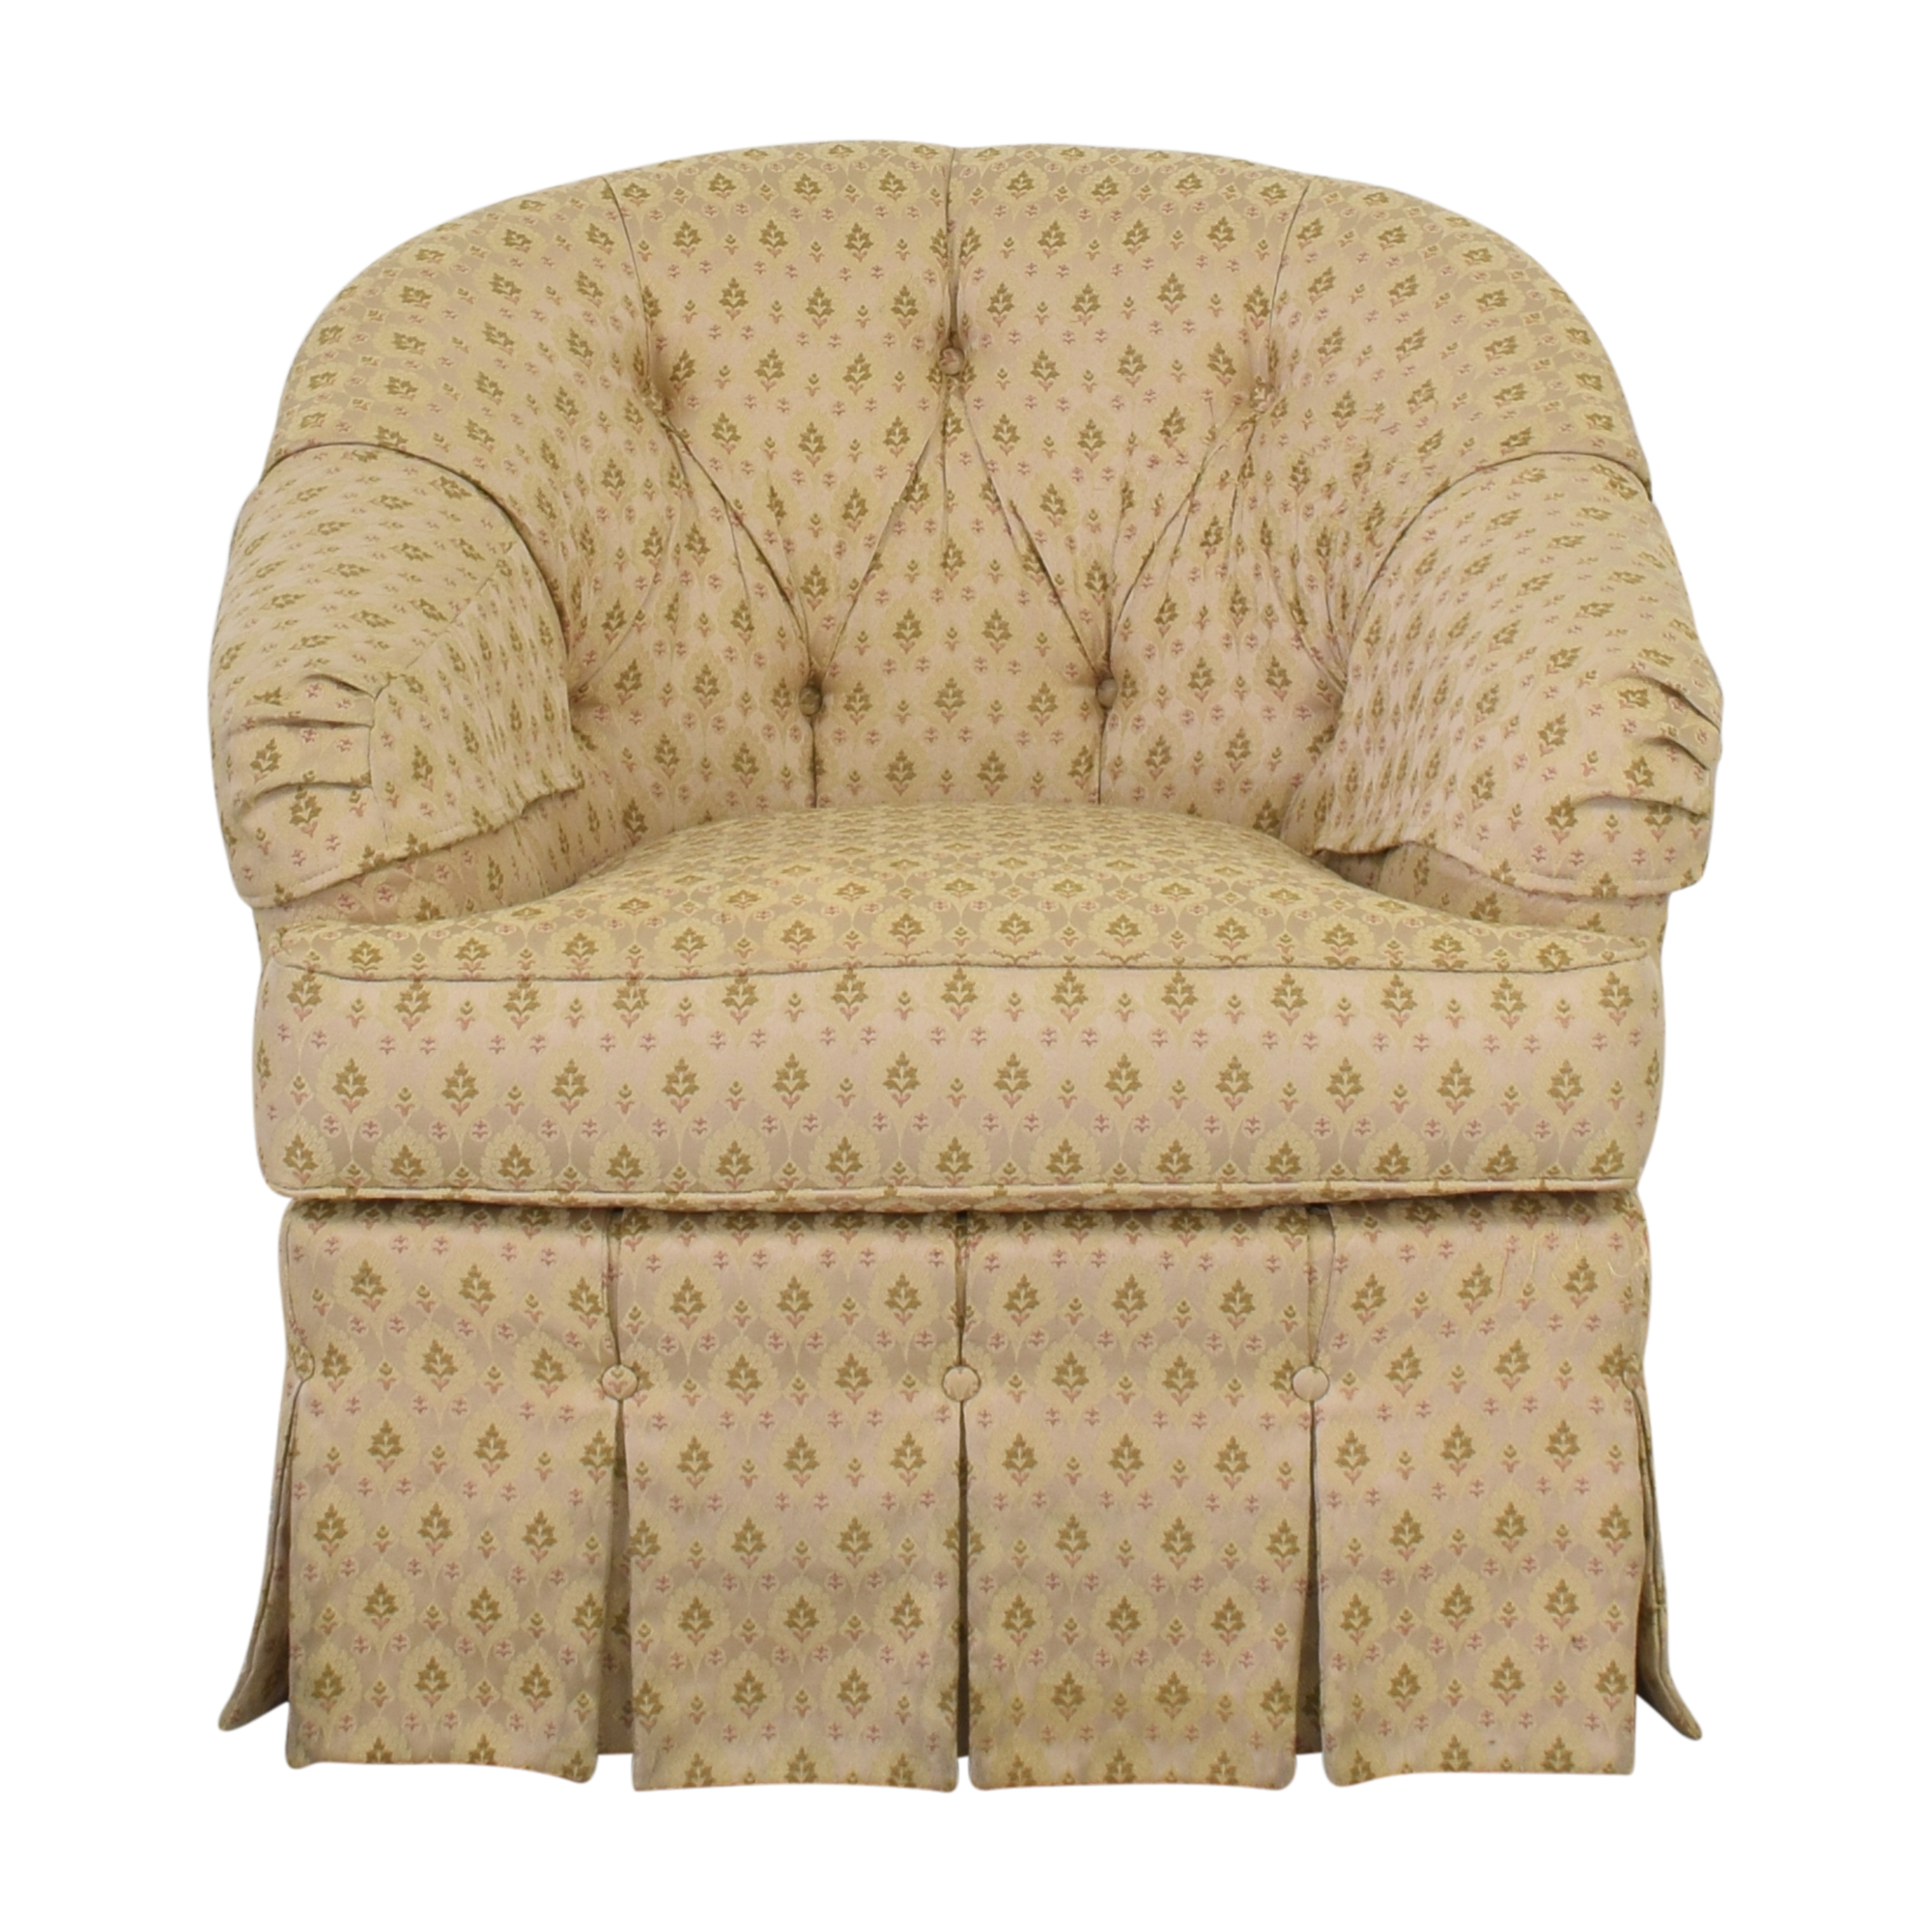 shop Ethan Allen Skirted Swivel Chair Ethan Allen Chairs